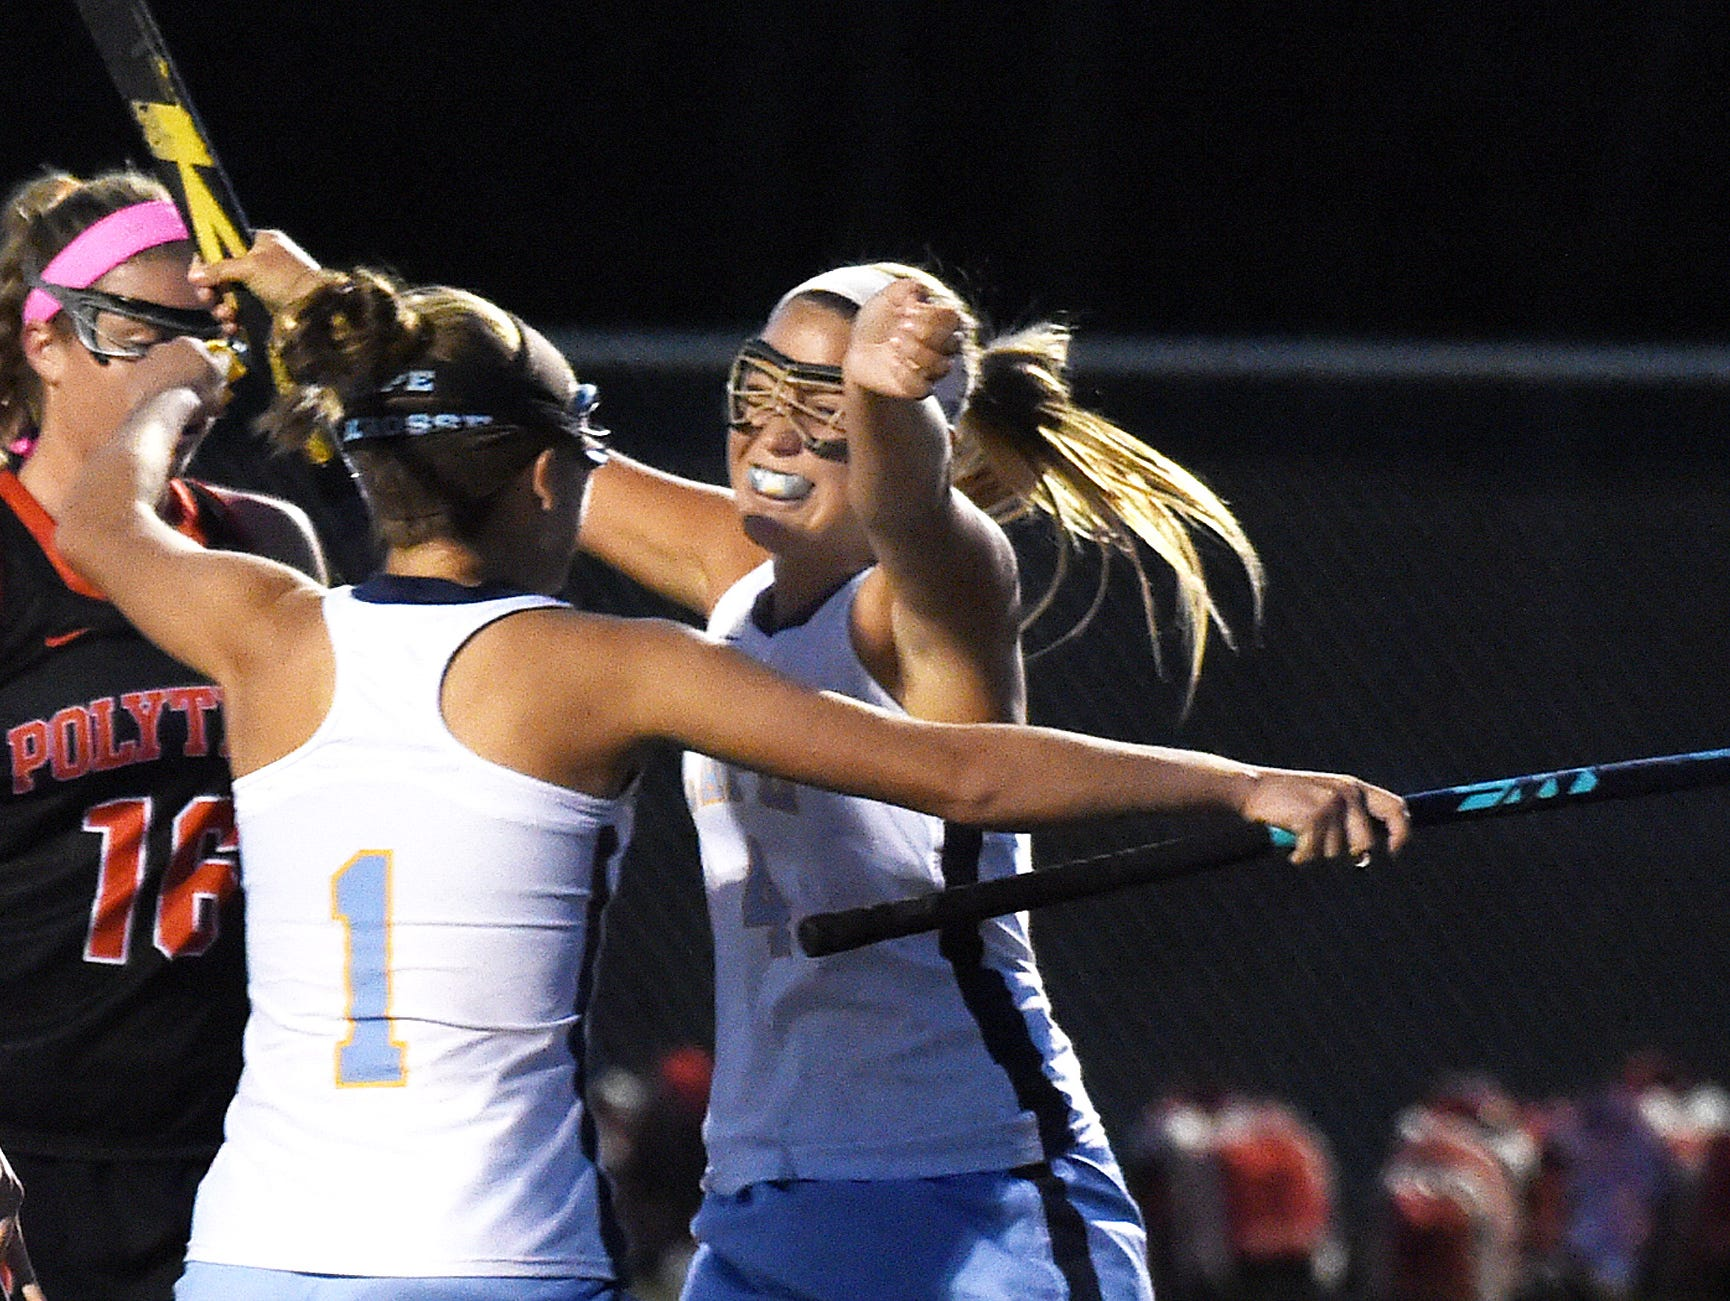 Capes Sydney Ostroski celebrates after scoring as Cape Henlopen HS (white) hosted Polytech HS (black) in Varsity Field Hockey at Champions Stadium at the school near Lewes on Thursday October 22.